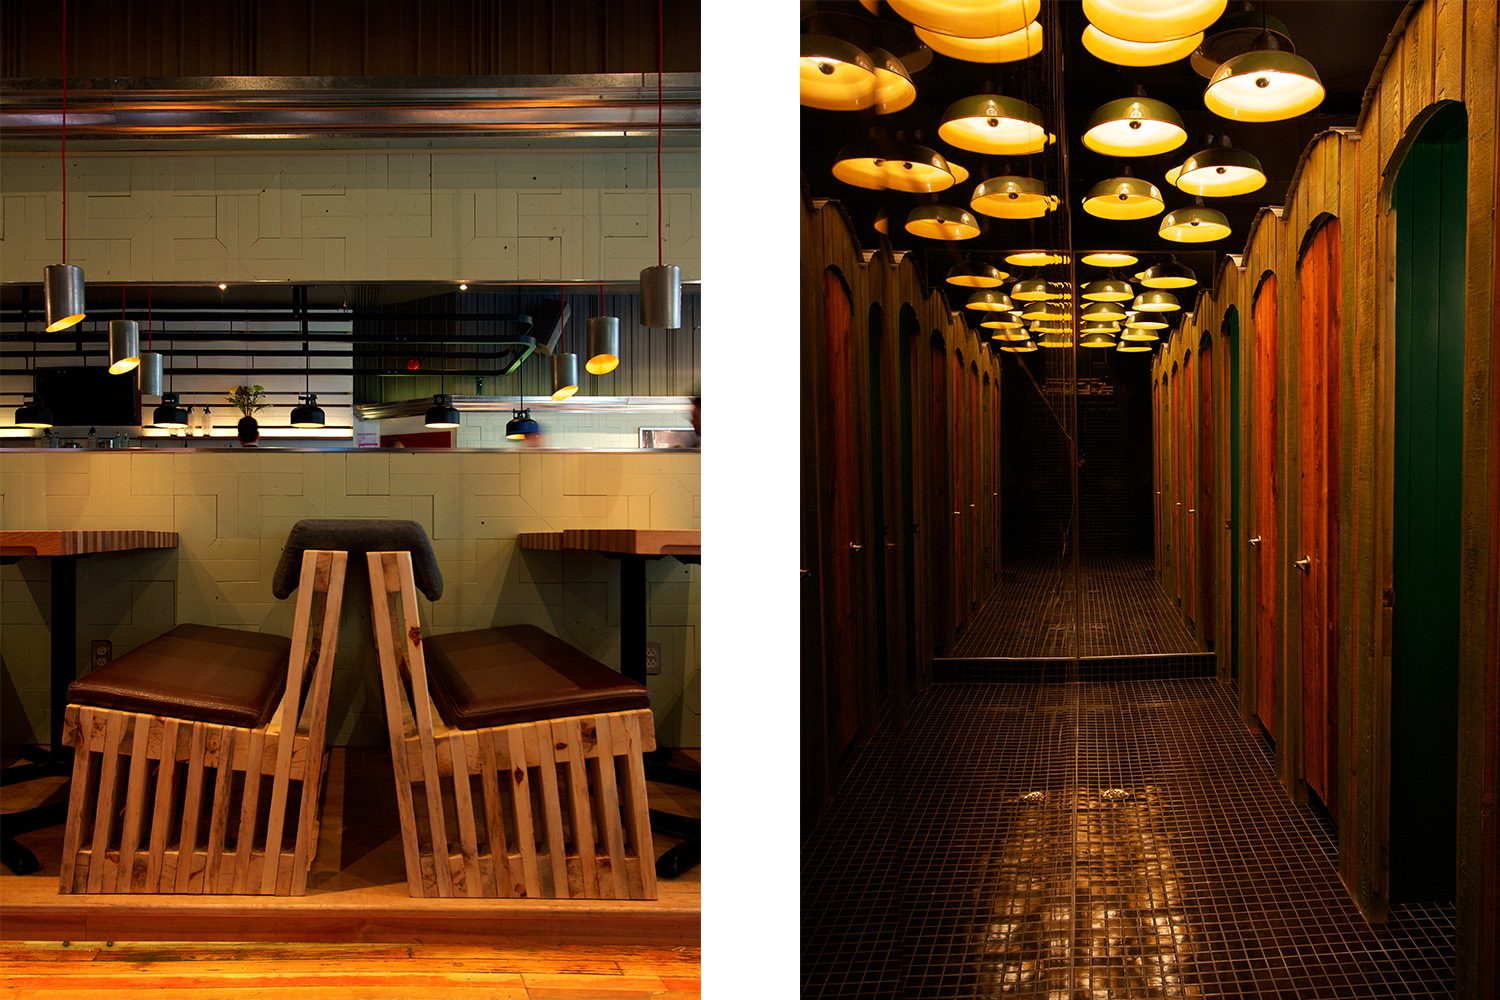 Detail of the profile of the bench made of raw wood slats with leather seat. View of the hallway of the toilet with large mirror and wooden doors. Mosaic floor and industrial lamps